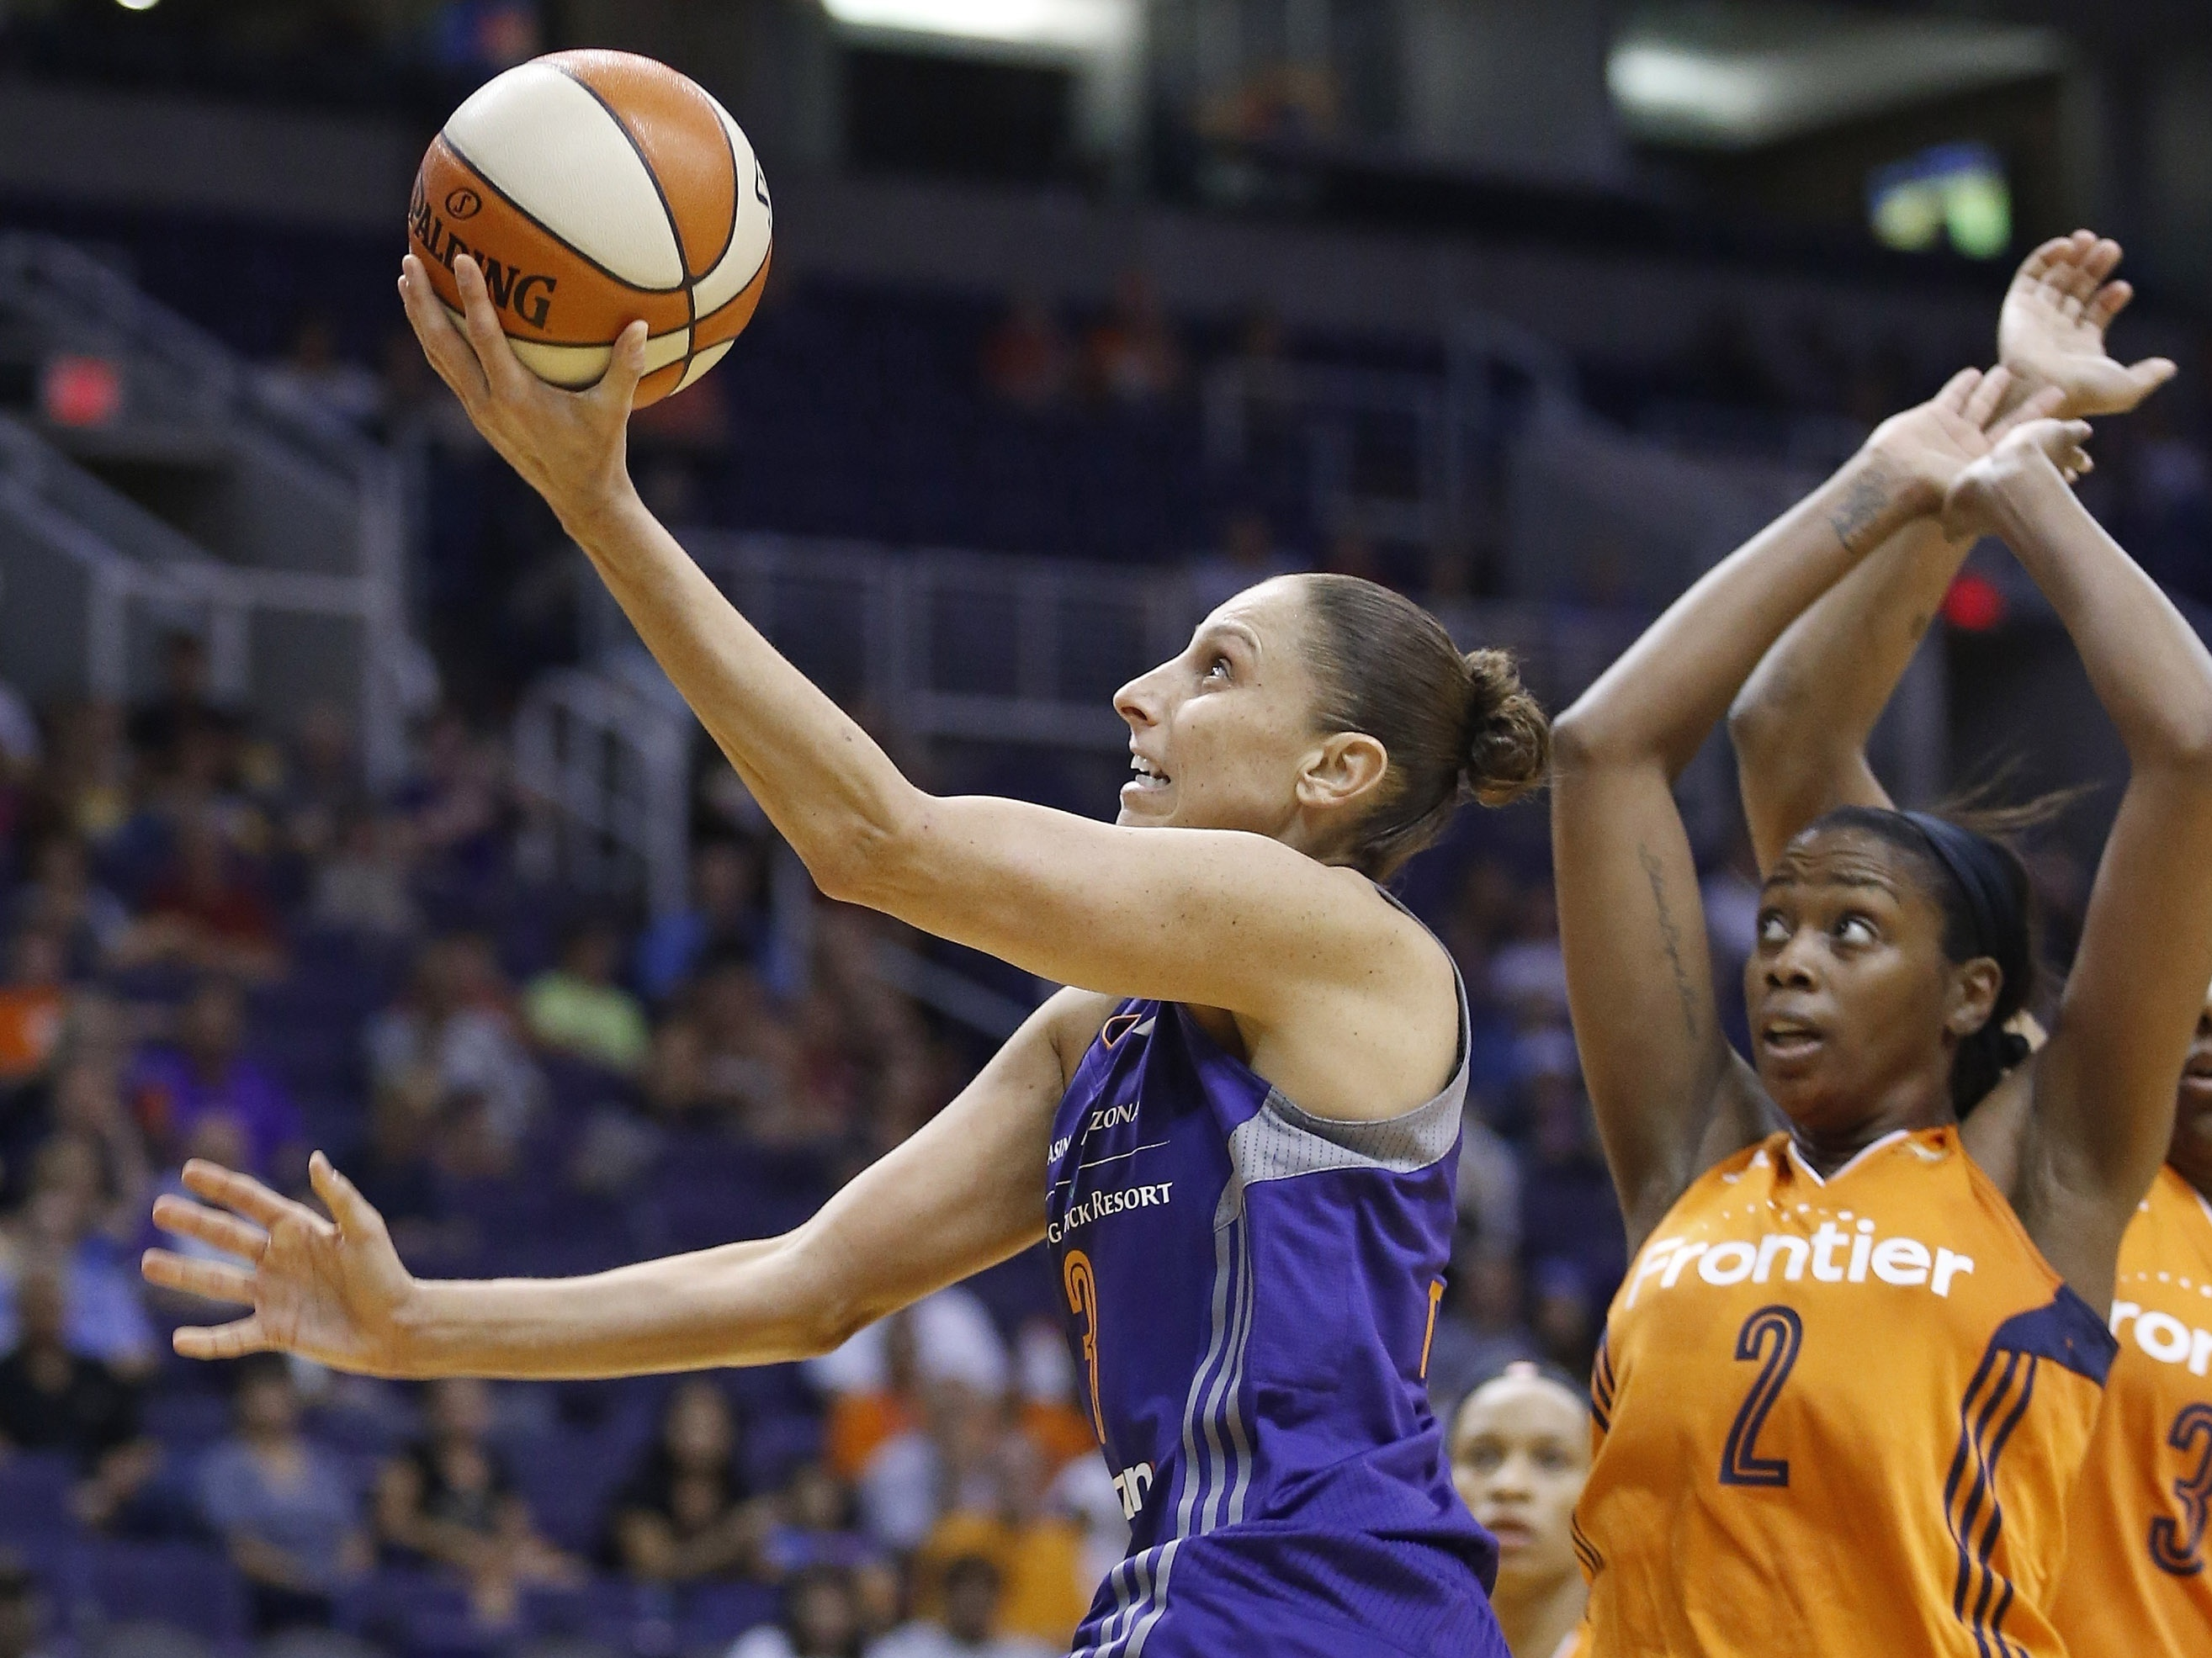 The Phoenix Mercury's Diana Taurasi set the WNBA's all-time scoring record on Sunday. Above Taurasi drives past the Connecticut Sun in a May 2016 game